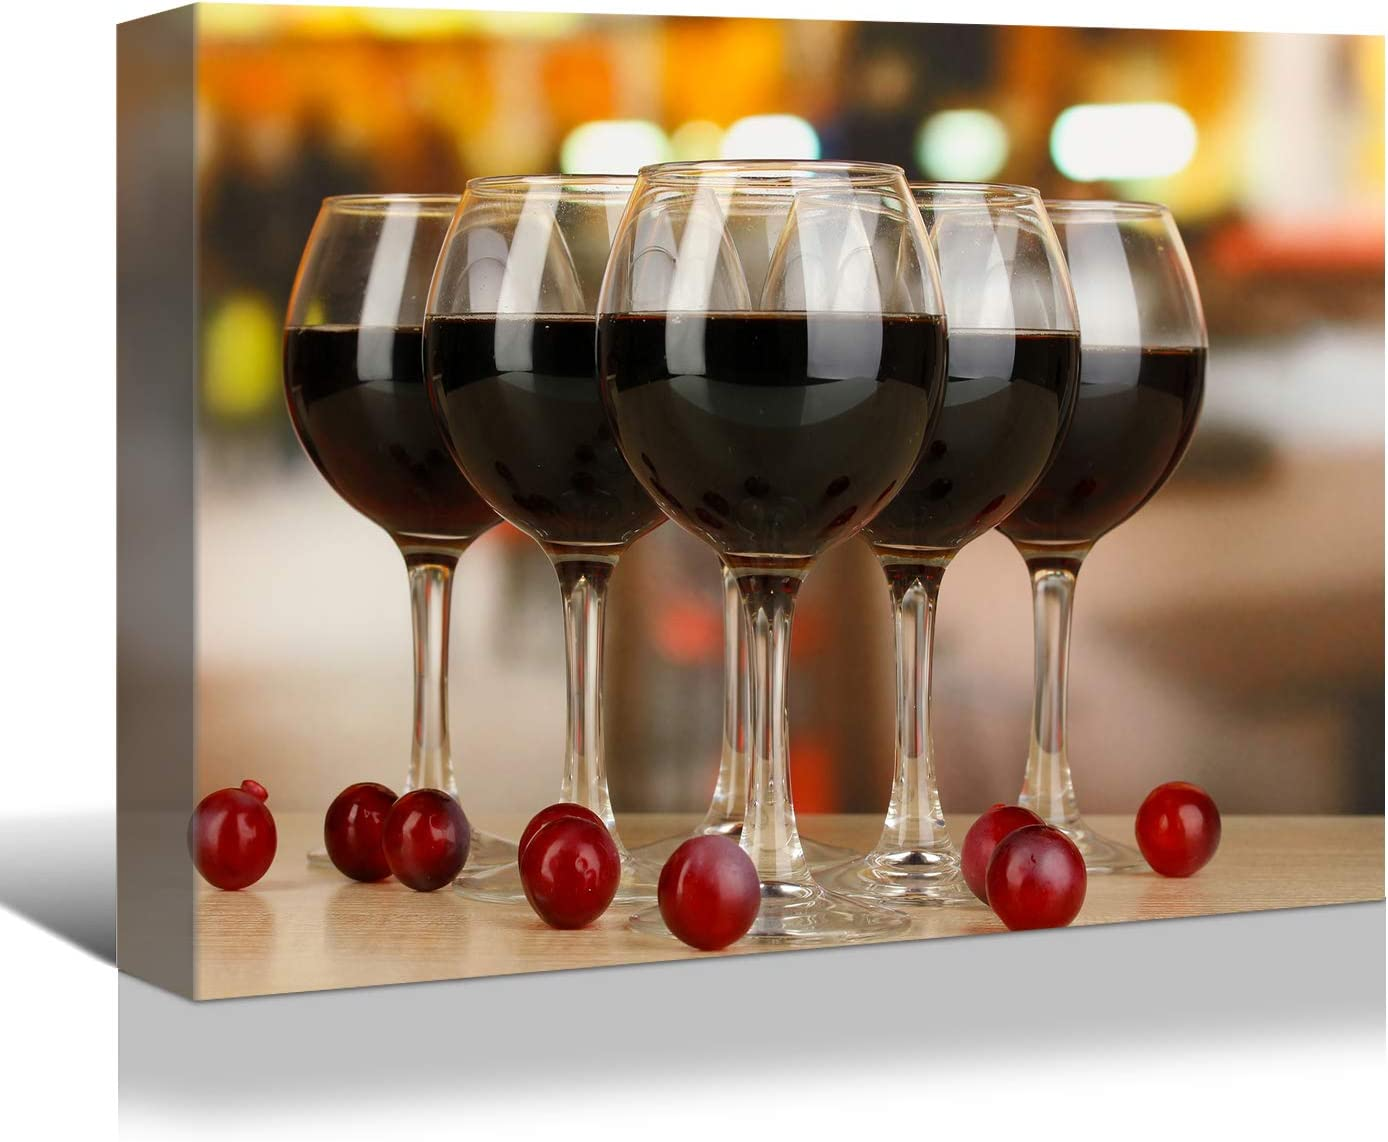 Looife Kitchen Wine Canvas Wall Art, 24x16 Inch Gallery Wrapped Wine Glass with Grapes Picture Prints Wall Decor, Food Art Deco for Dining Room and Bar Wall Decoration